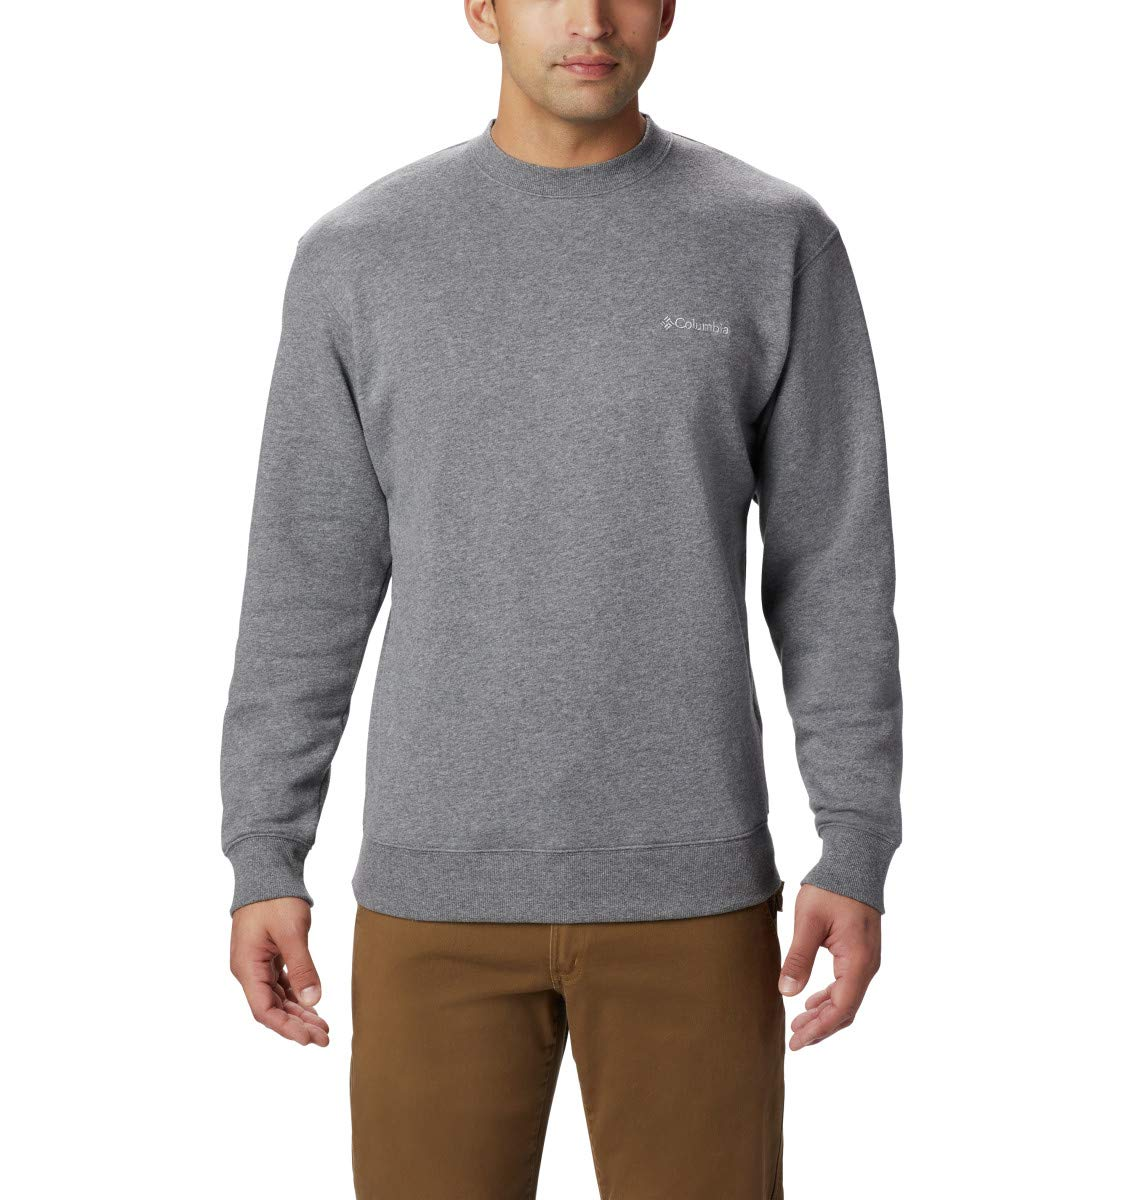 Columbia Men's Hart II Crew Sweatshirt, Charcoal Heather, XX-Large by Columbia